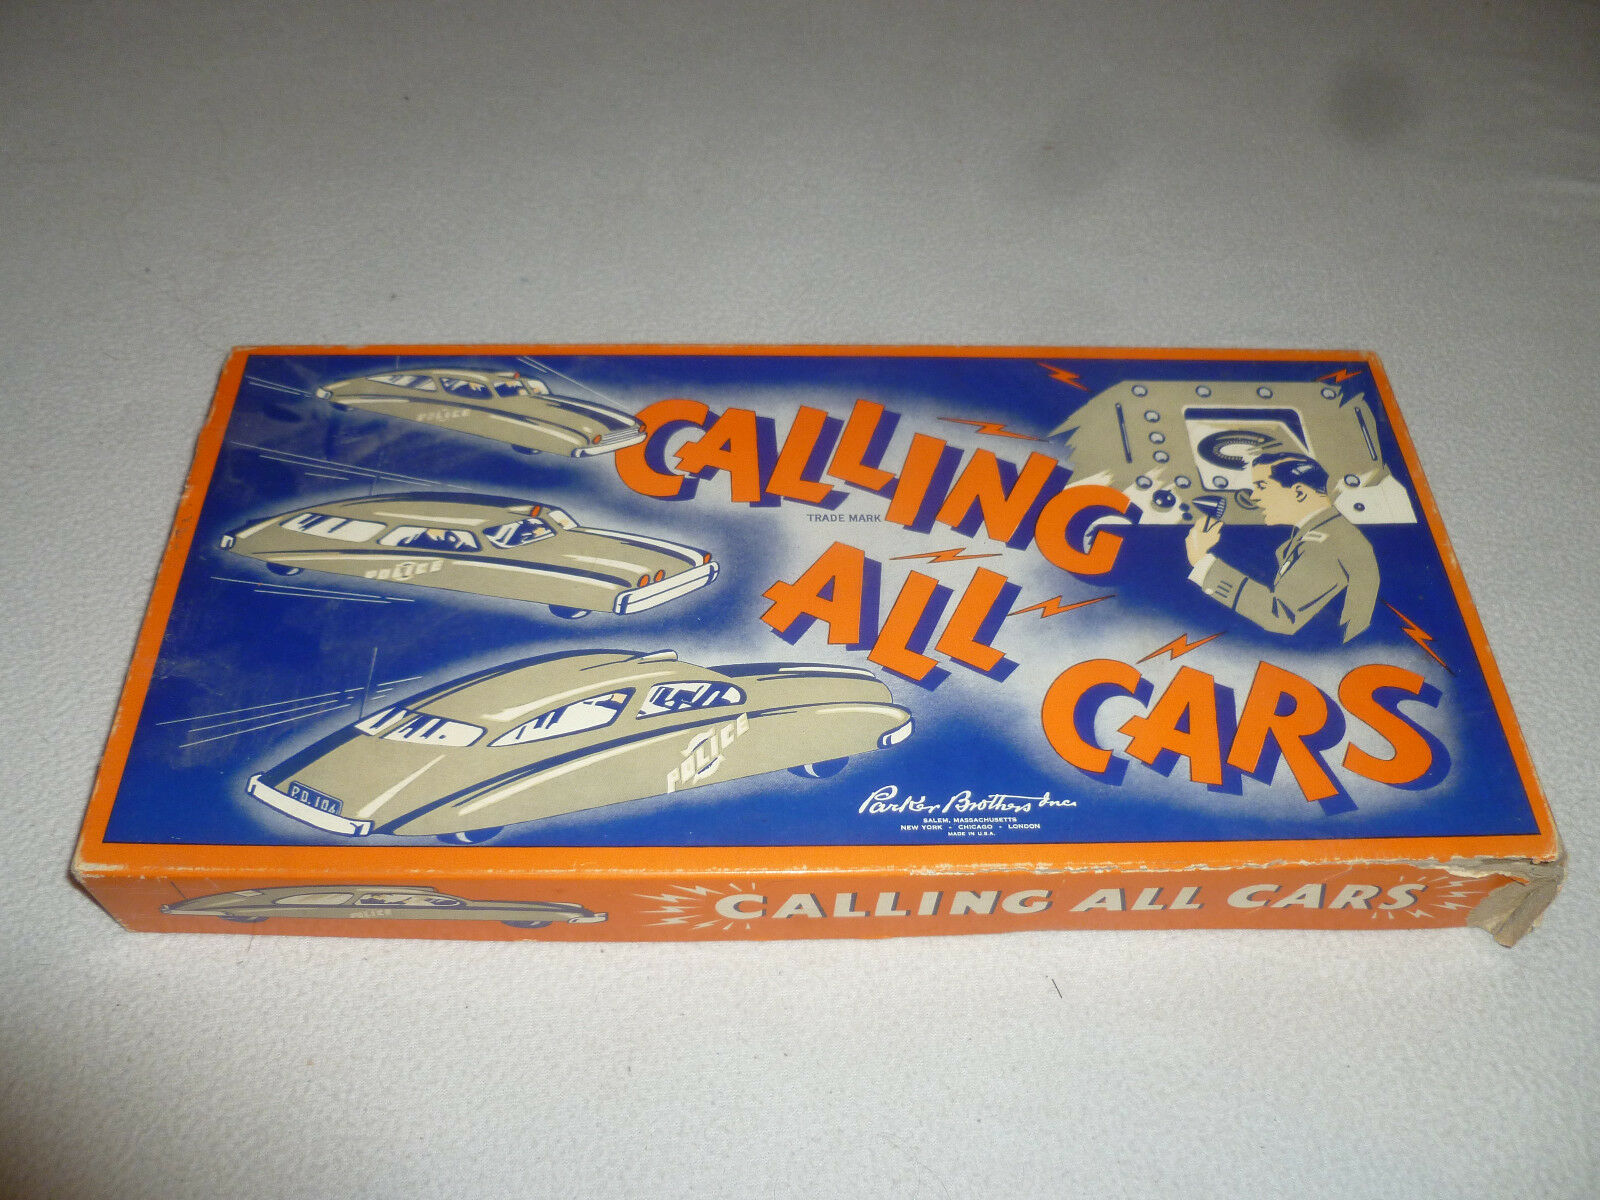 VINTAGE BOARD GAME CALLING ALL CARS PARKER BrossoHERS 1938 POLICE NEAR COMPLETE